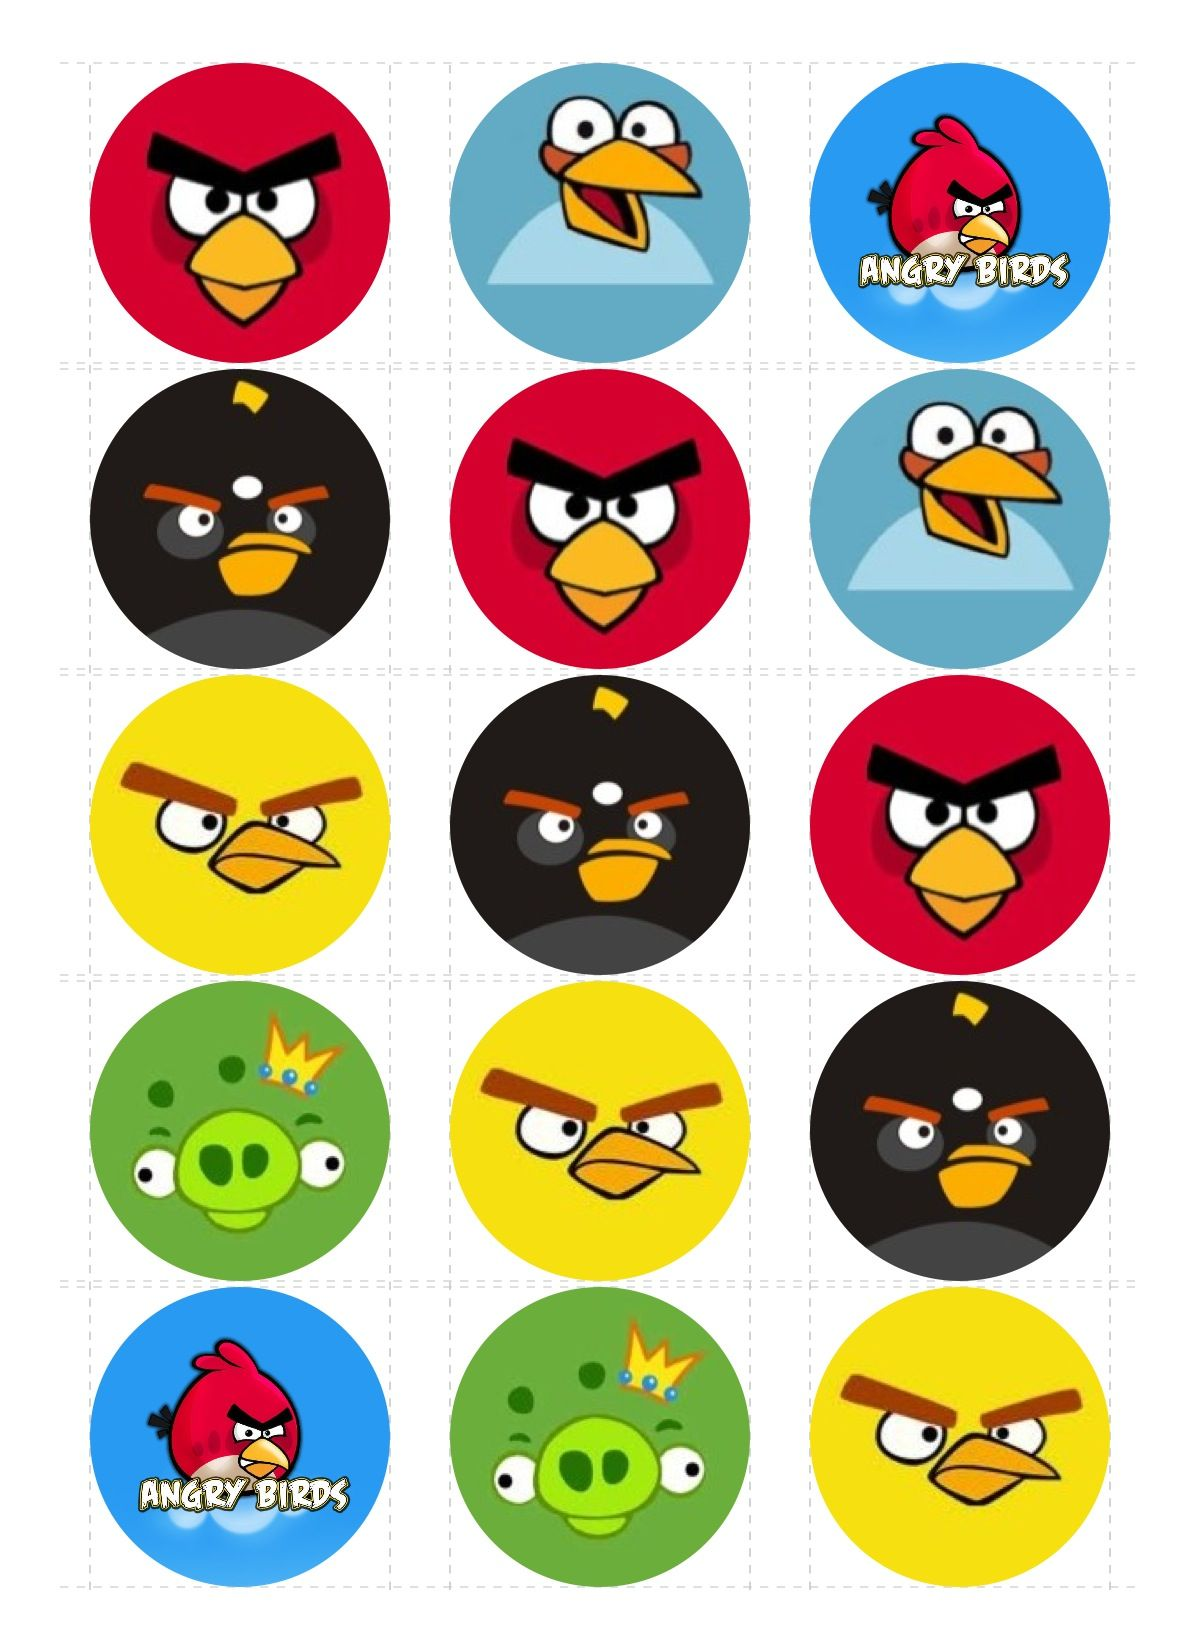 Angry birds edible cupcake images Cupcake Toppers - Sweet Creations